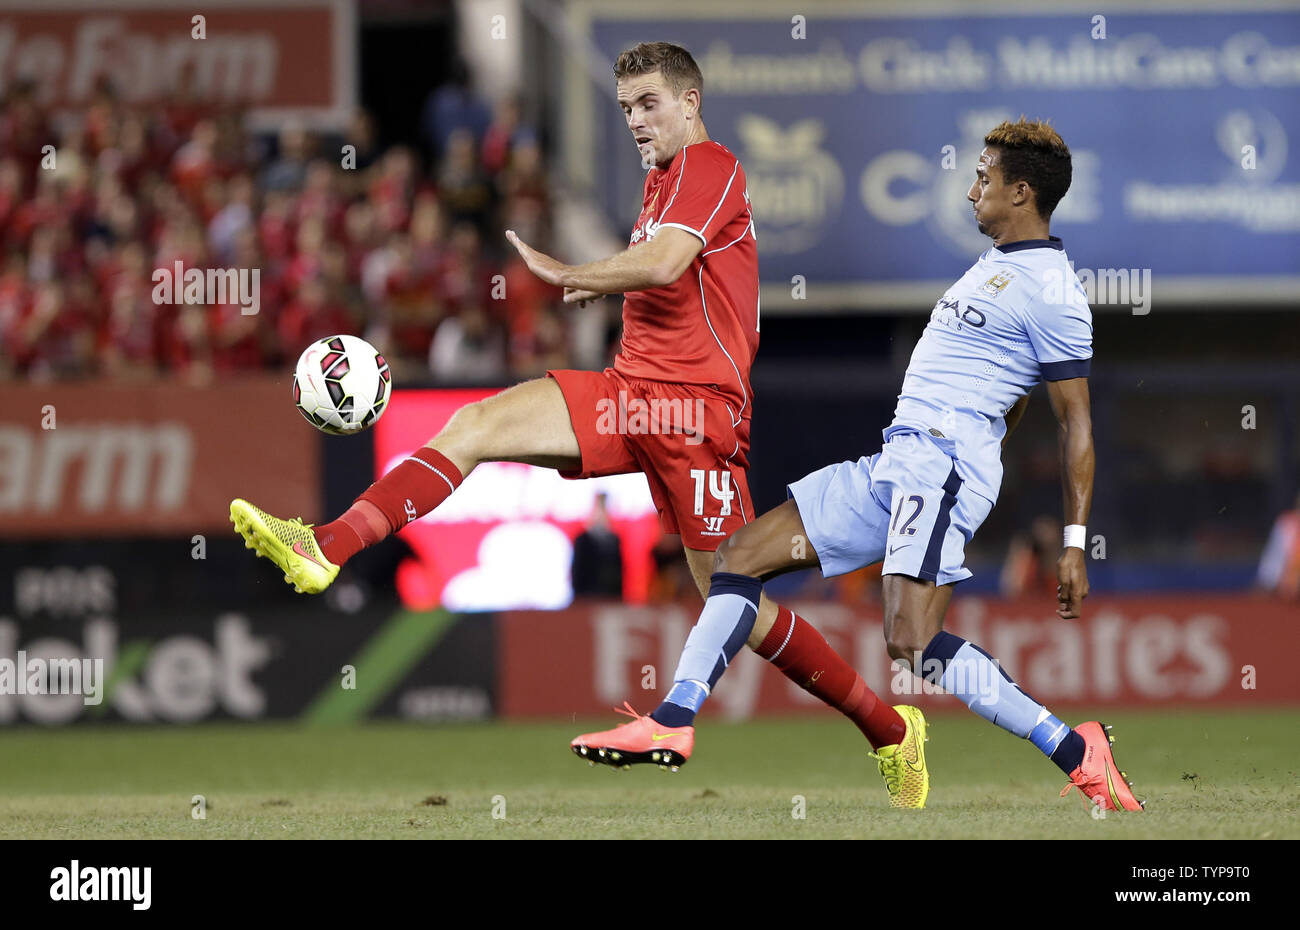 Manchester City Scott Sinclair defends Liverpool FC Jordan Henderson who brings the ball across the field at the Guinness International Champions Cup at Yankee Stadium in New York City on July 30, 2014. The Guinness International Champions Cup is a unique tournament featuring eight of the world's best and most recognizable soccer clubs including Real Madrid CF, Manchester United, Manchester City, Liverpool FC, AS Roma, Inter Milan, AC Milan and Olympiacos. The Final score was Manchester City 2 Liverpool 2 and Liverpool won 3-1 on penalties.     UPI/John Angelillo - Stock Image